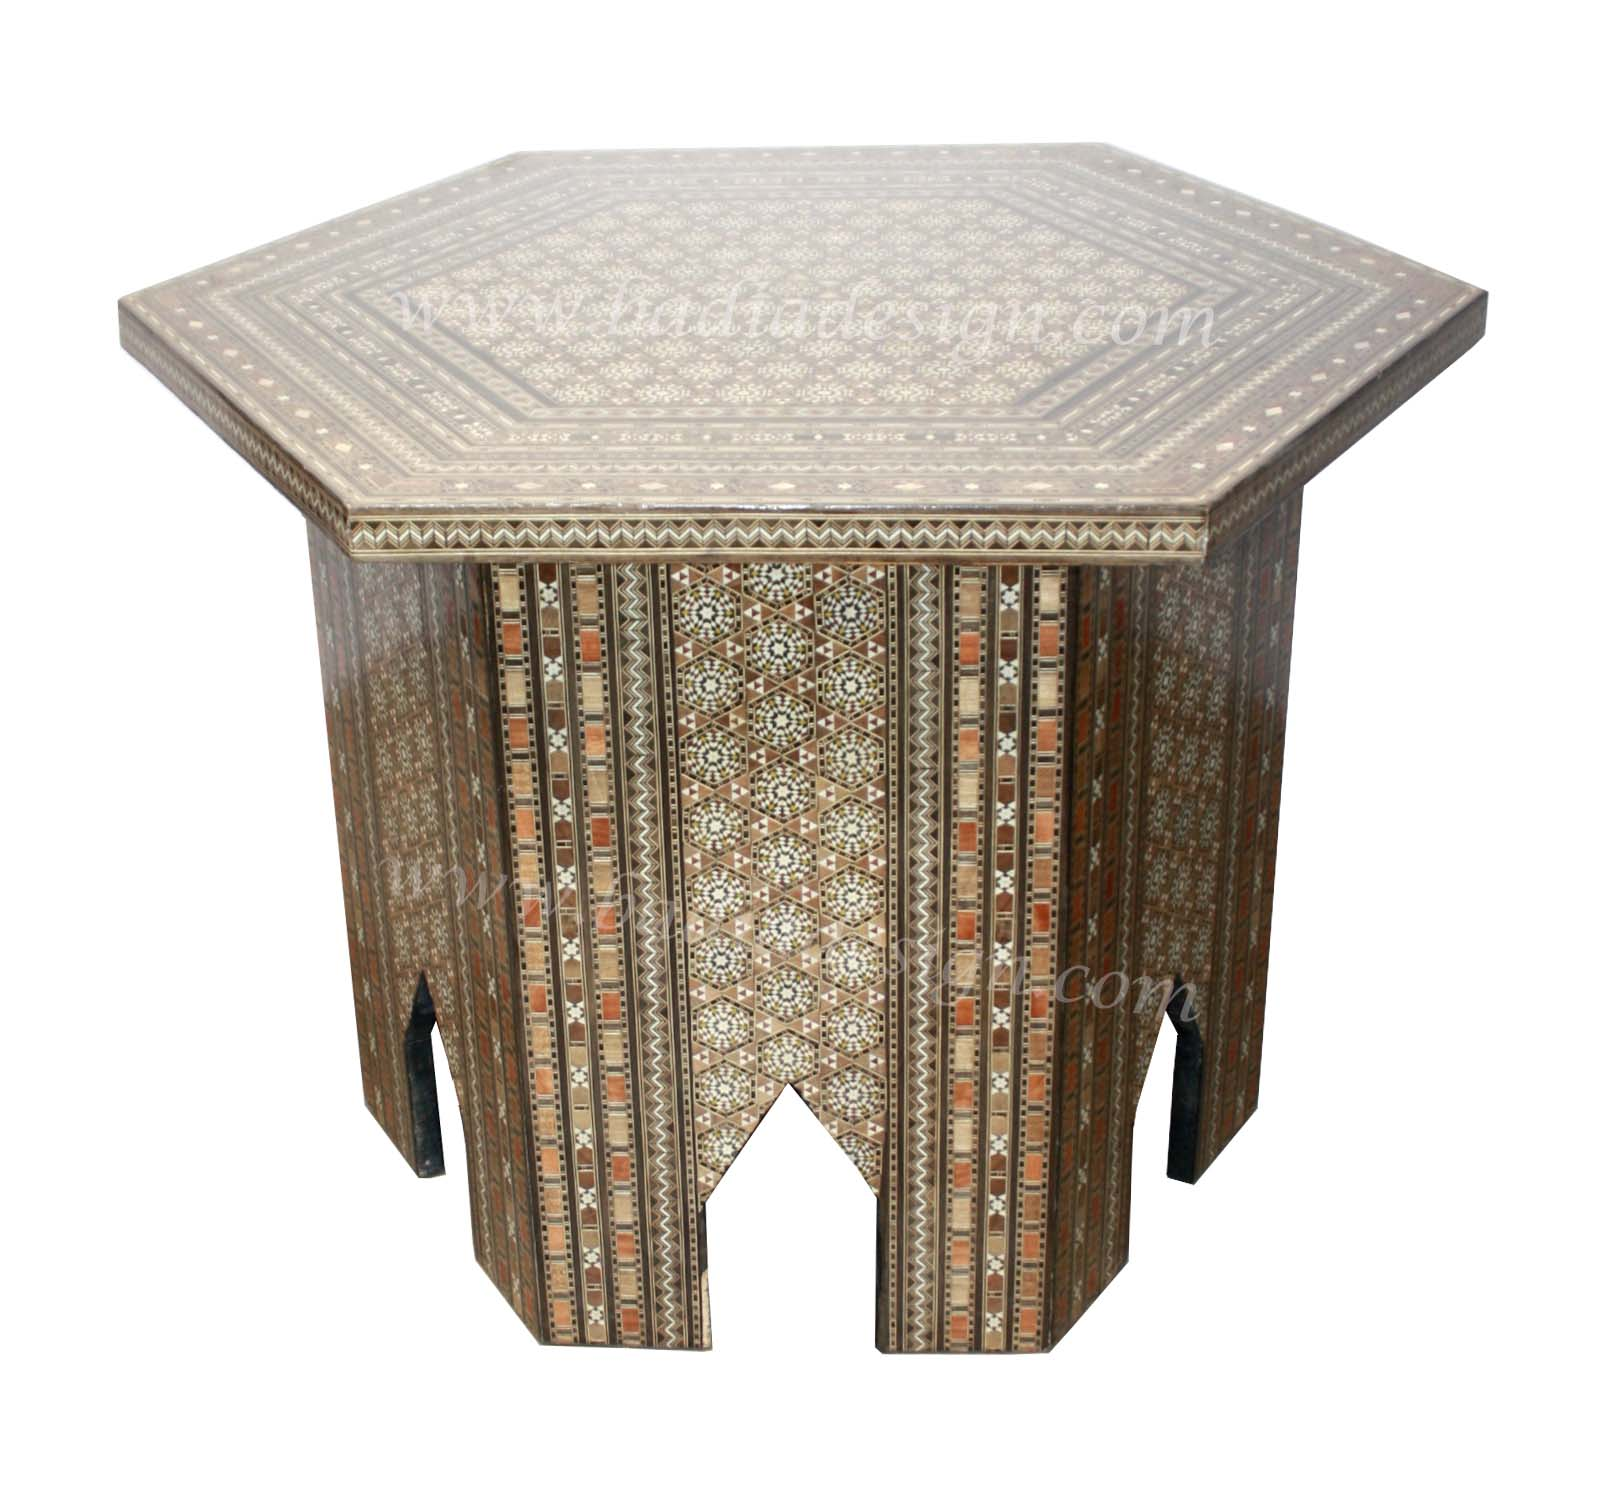 syrian-design-side-table-mop-st053-1.jpg